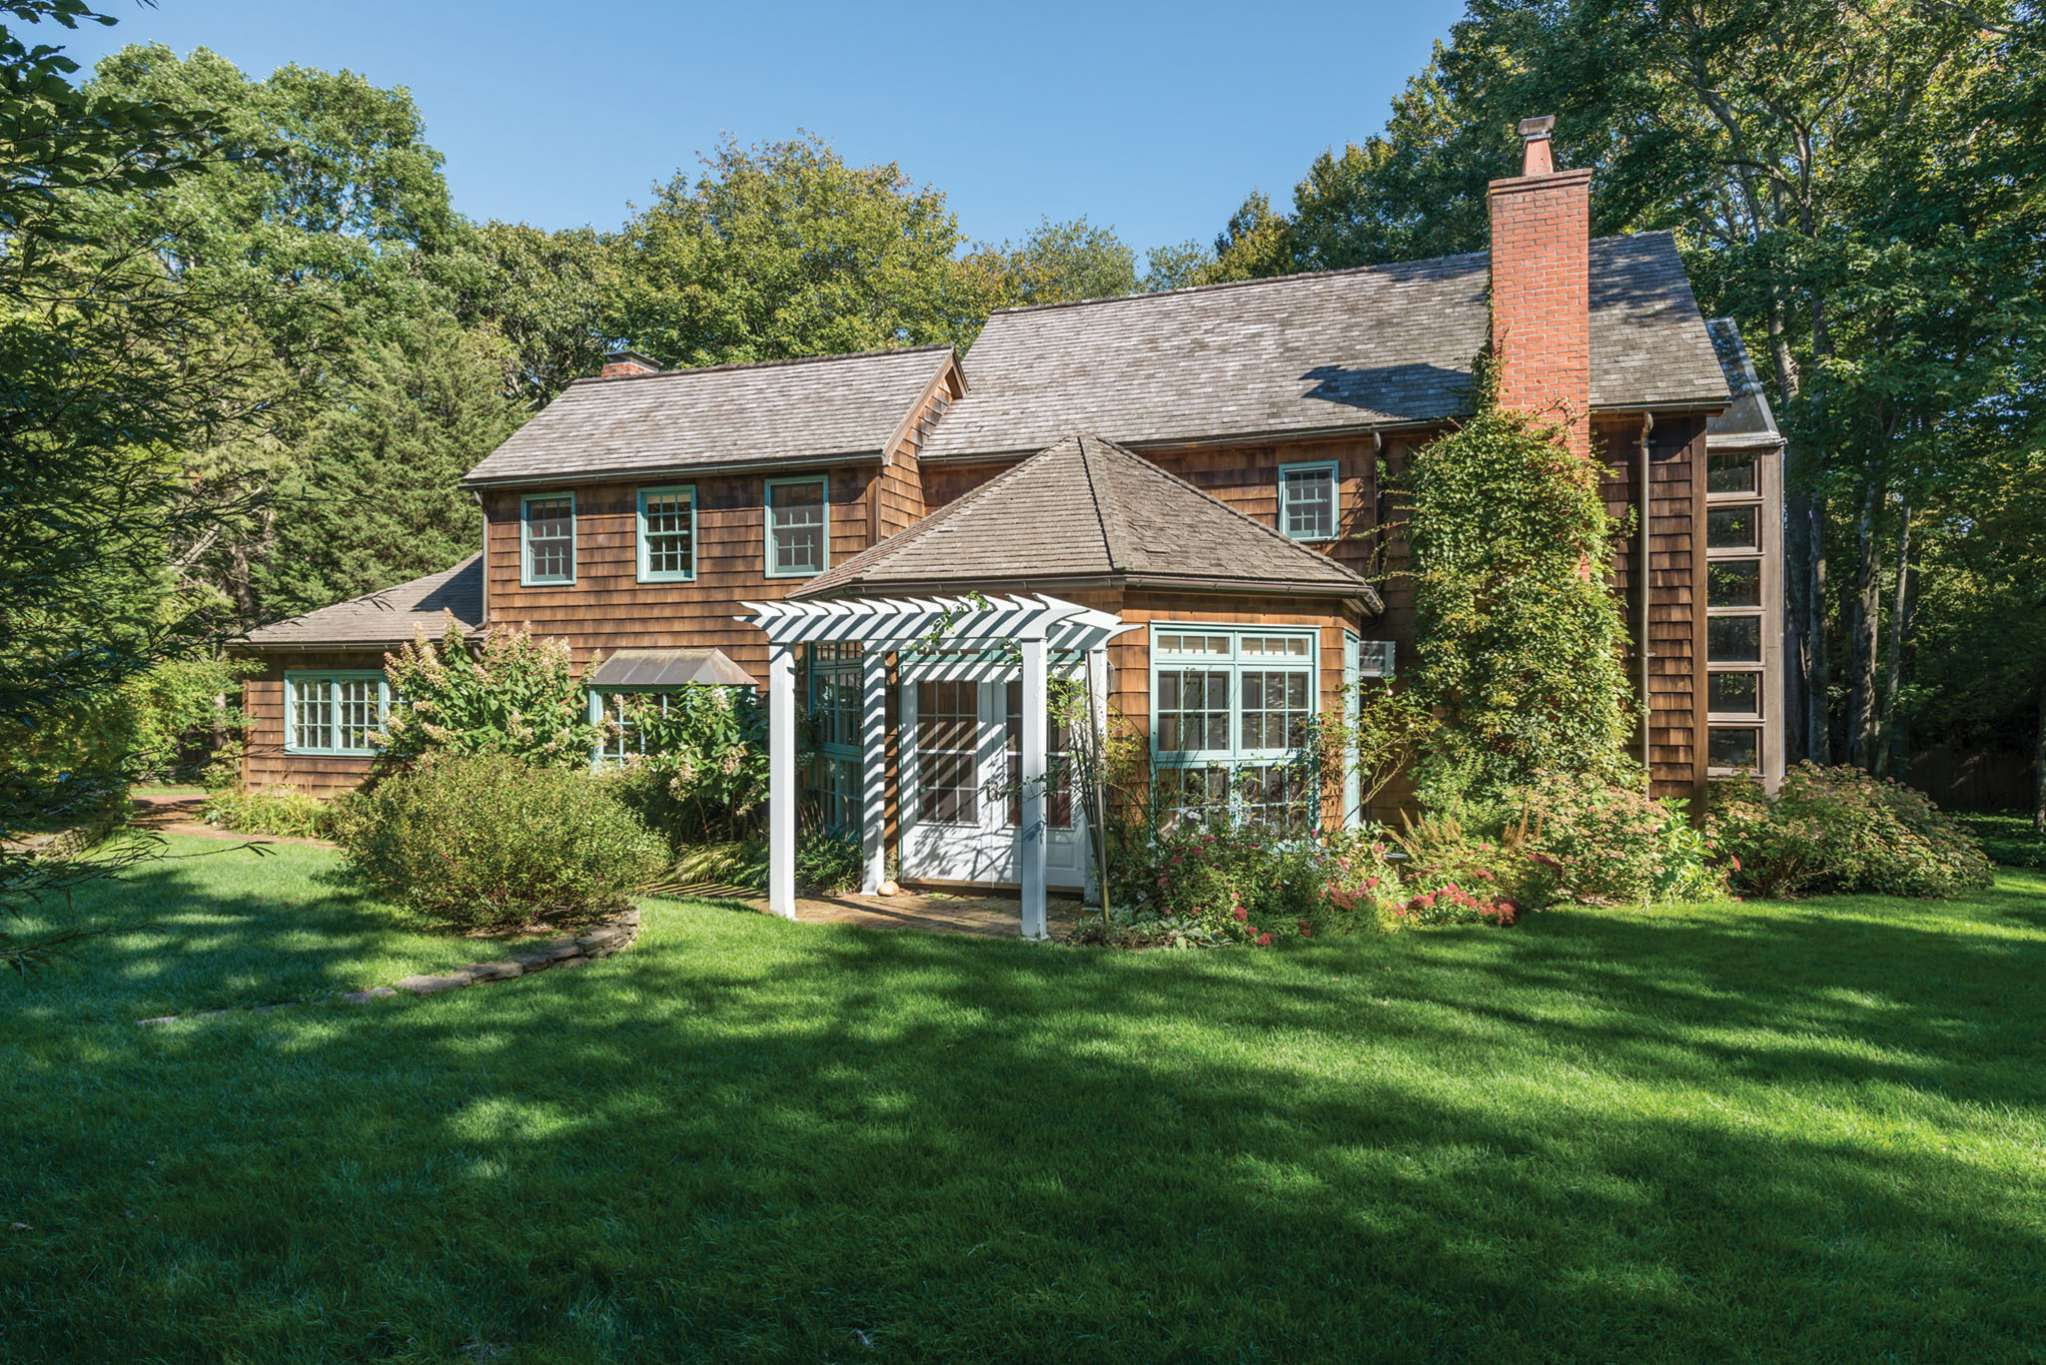 Single Family Home for Sale at Extraordinary Value & Potential 20 Red Dirt Road, East Hampton, New York